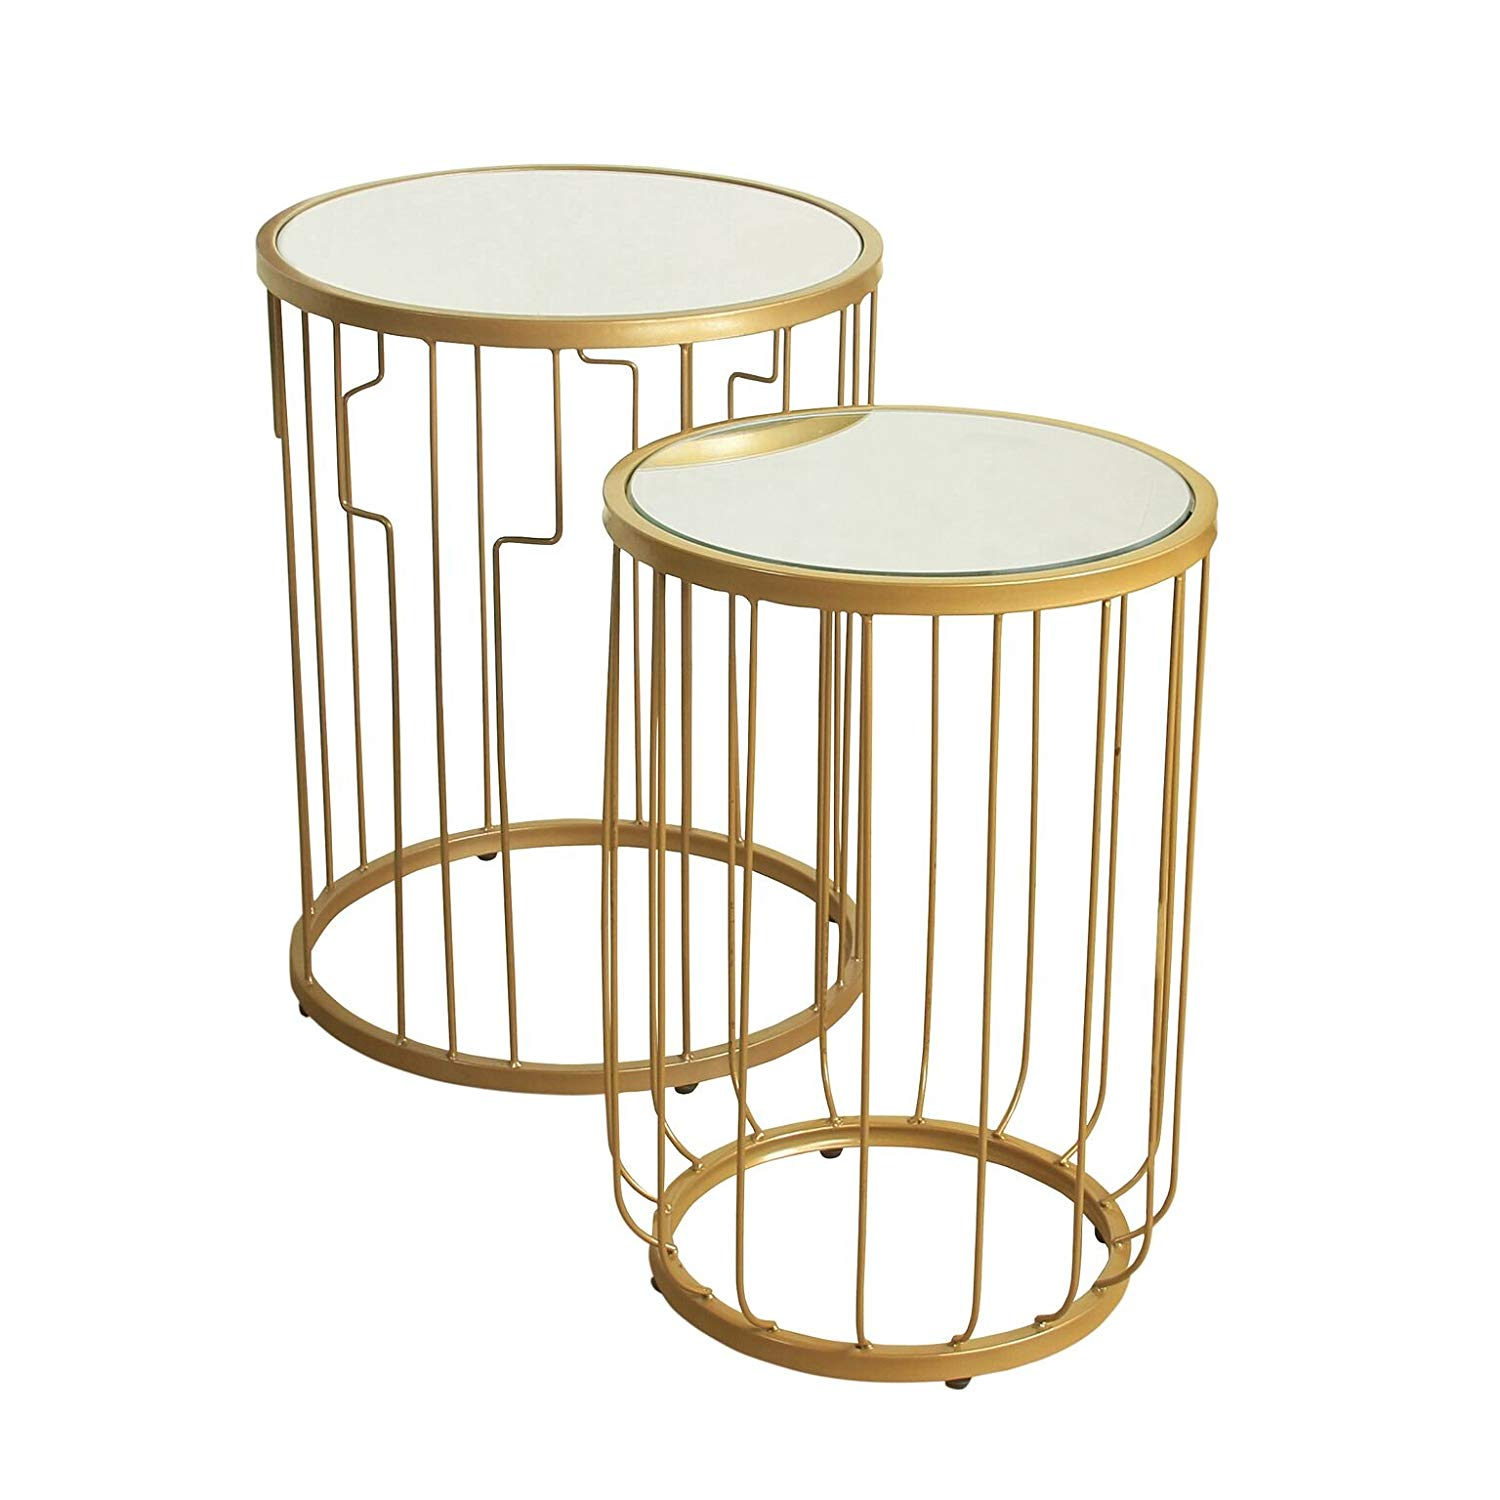 homepop metal accent nesting tables with glass gold table top set kitchen dining cherry mission end gray recliner small sofa lamps barn wood furniture inch nightstand porch side